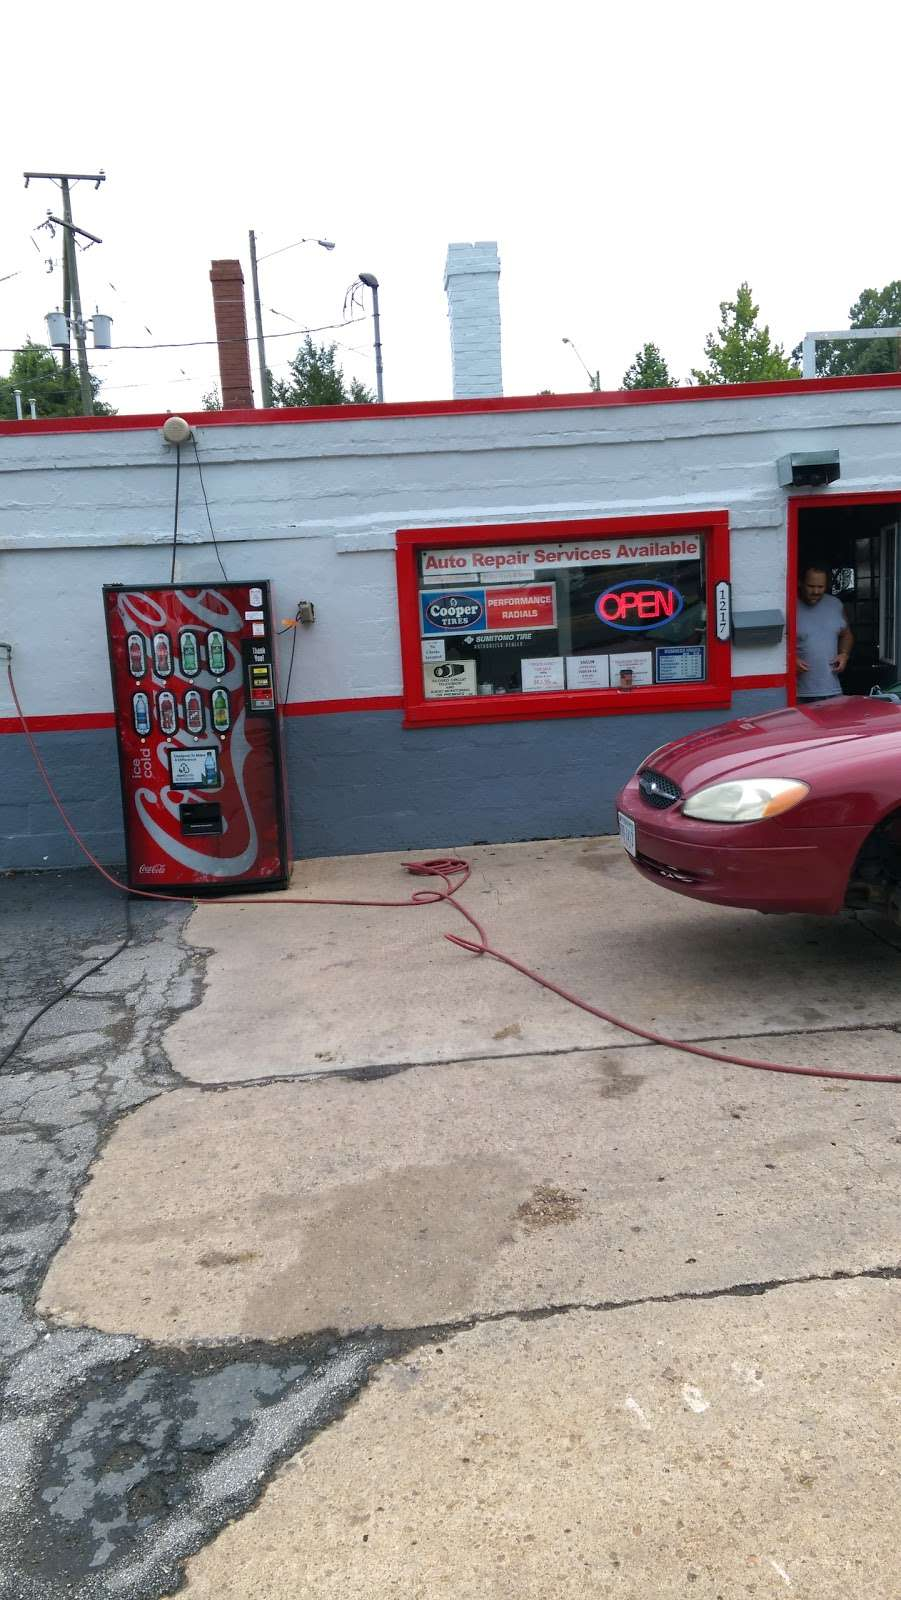 Mikes Tire Center - car repair  | Photo 1 of 10 | Address: 1217 1/2 Lafayette Blvd, Fredericksburg, VA 22401, USA | Phone: (540) 373-0779